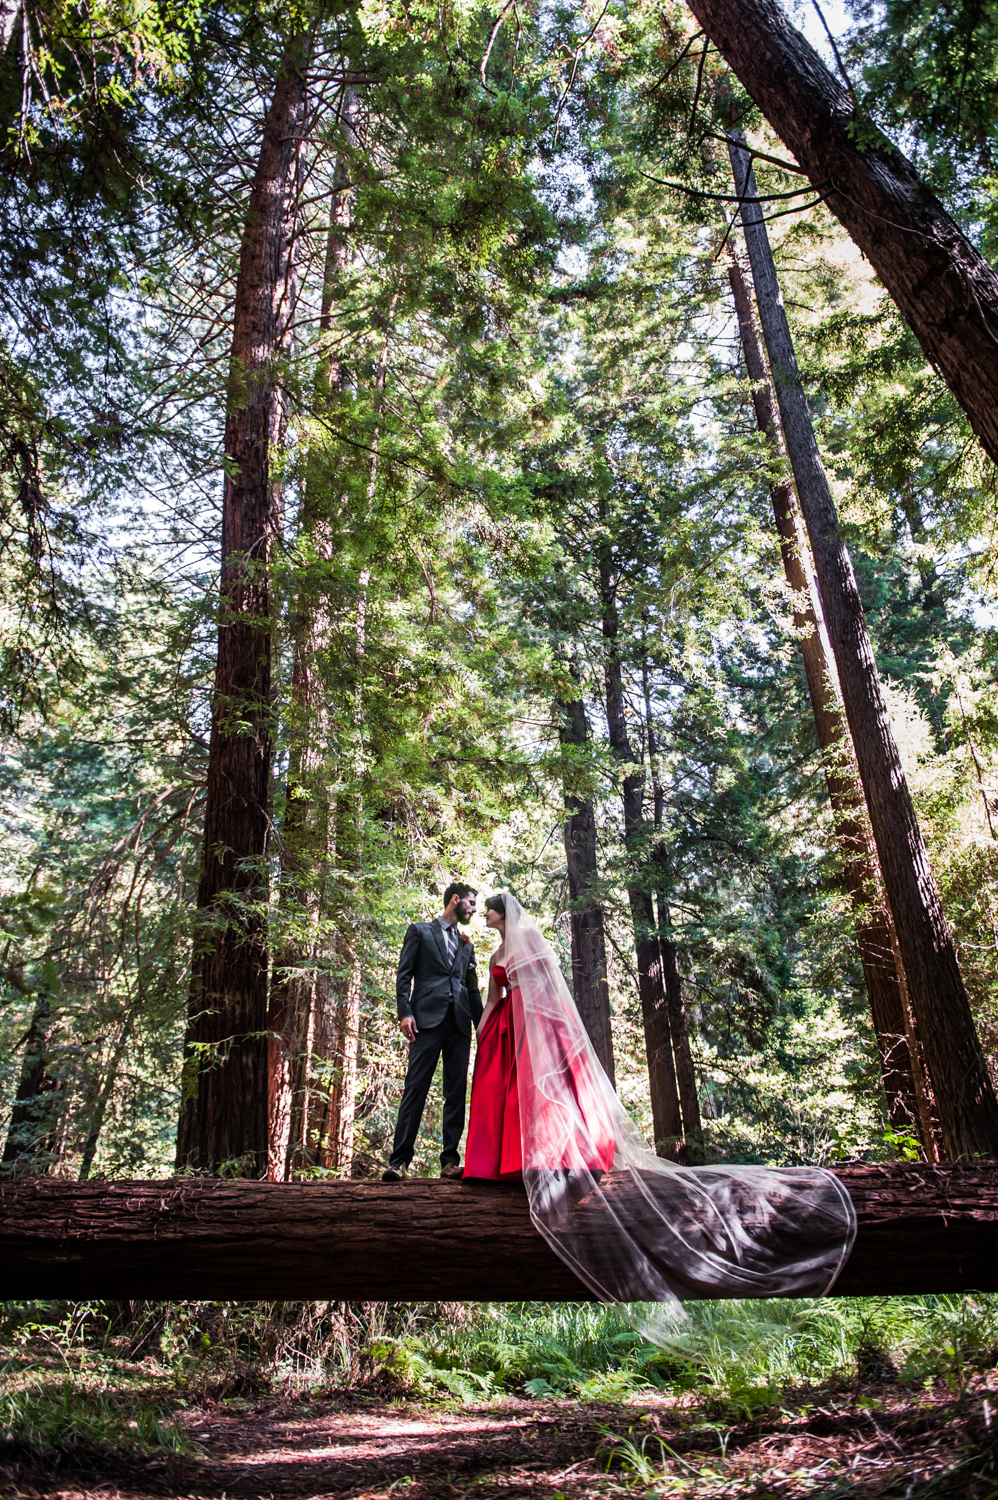 mendocino_redweddingdress_redwoods_trees_couple